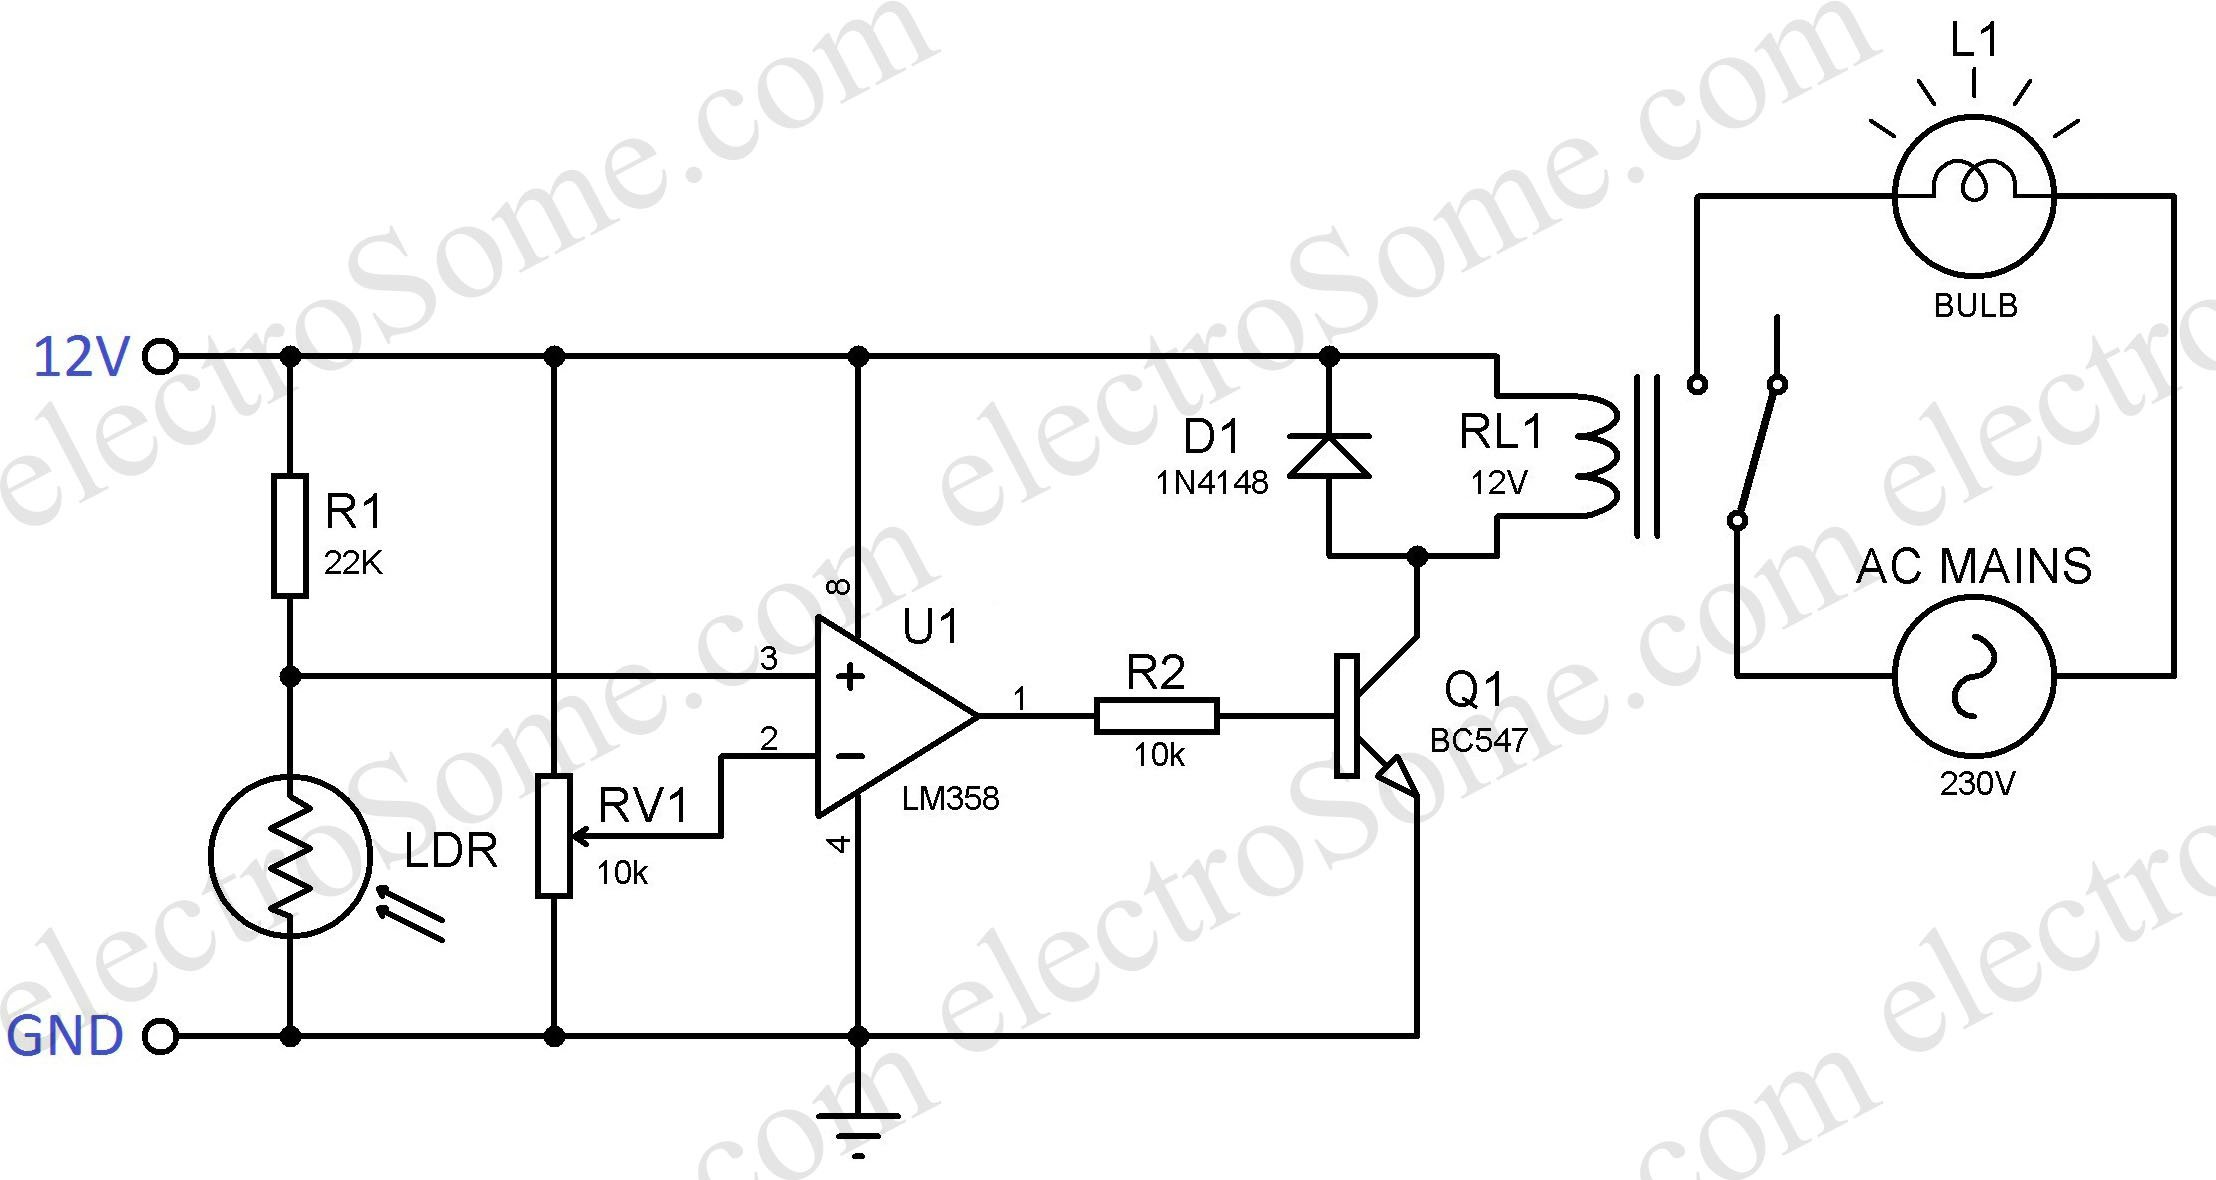 Automatic Night Lamp Using Ldr Eagle Double Light Switch Wiring Diagram Circuit